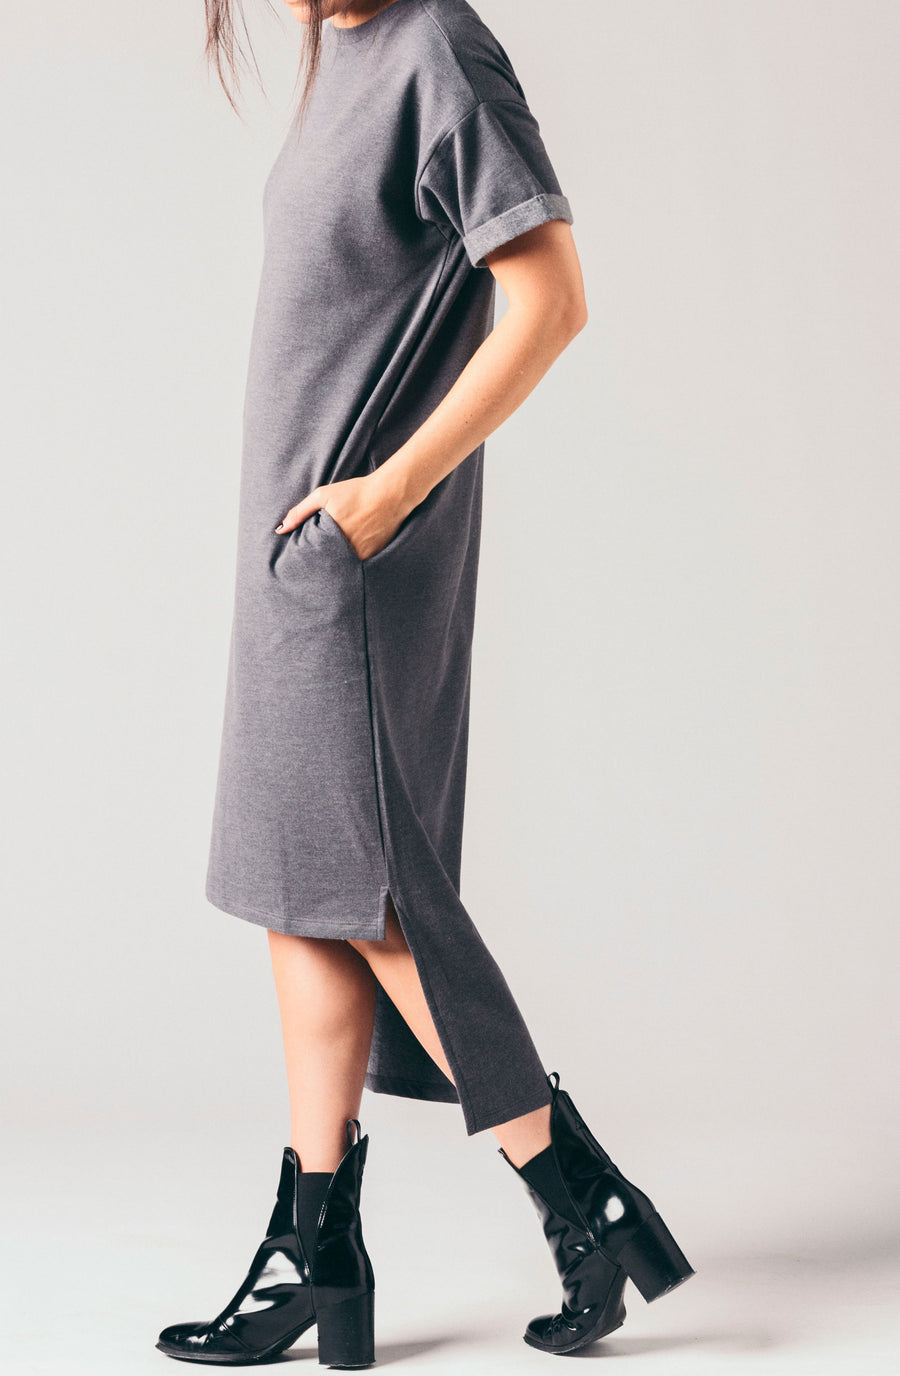 Native Youth grey high low soft, sweatshirt t-shirt dress.